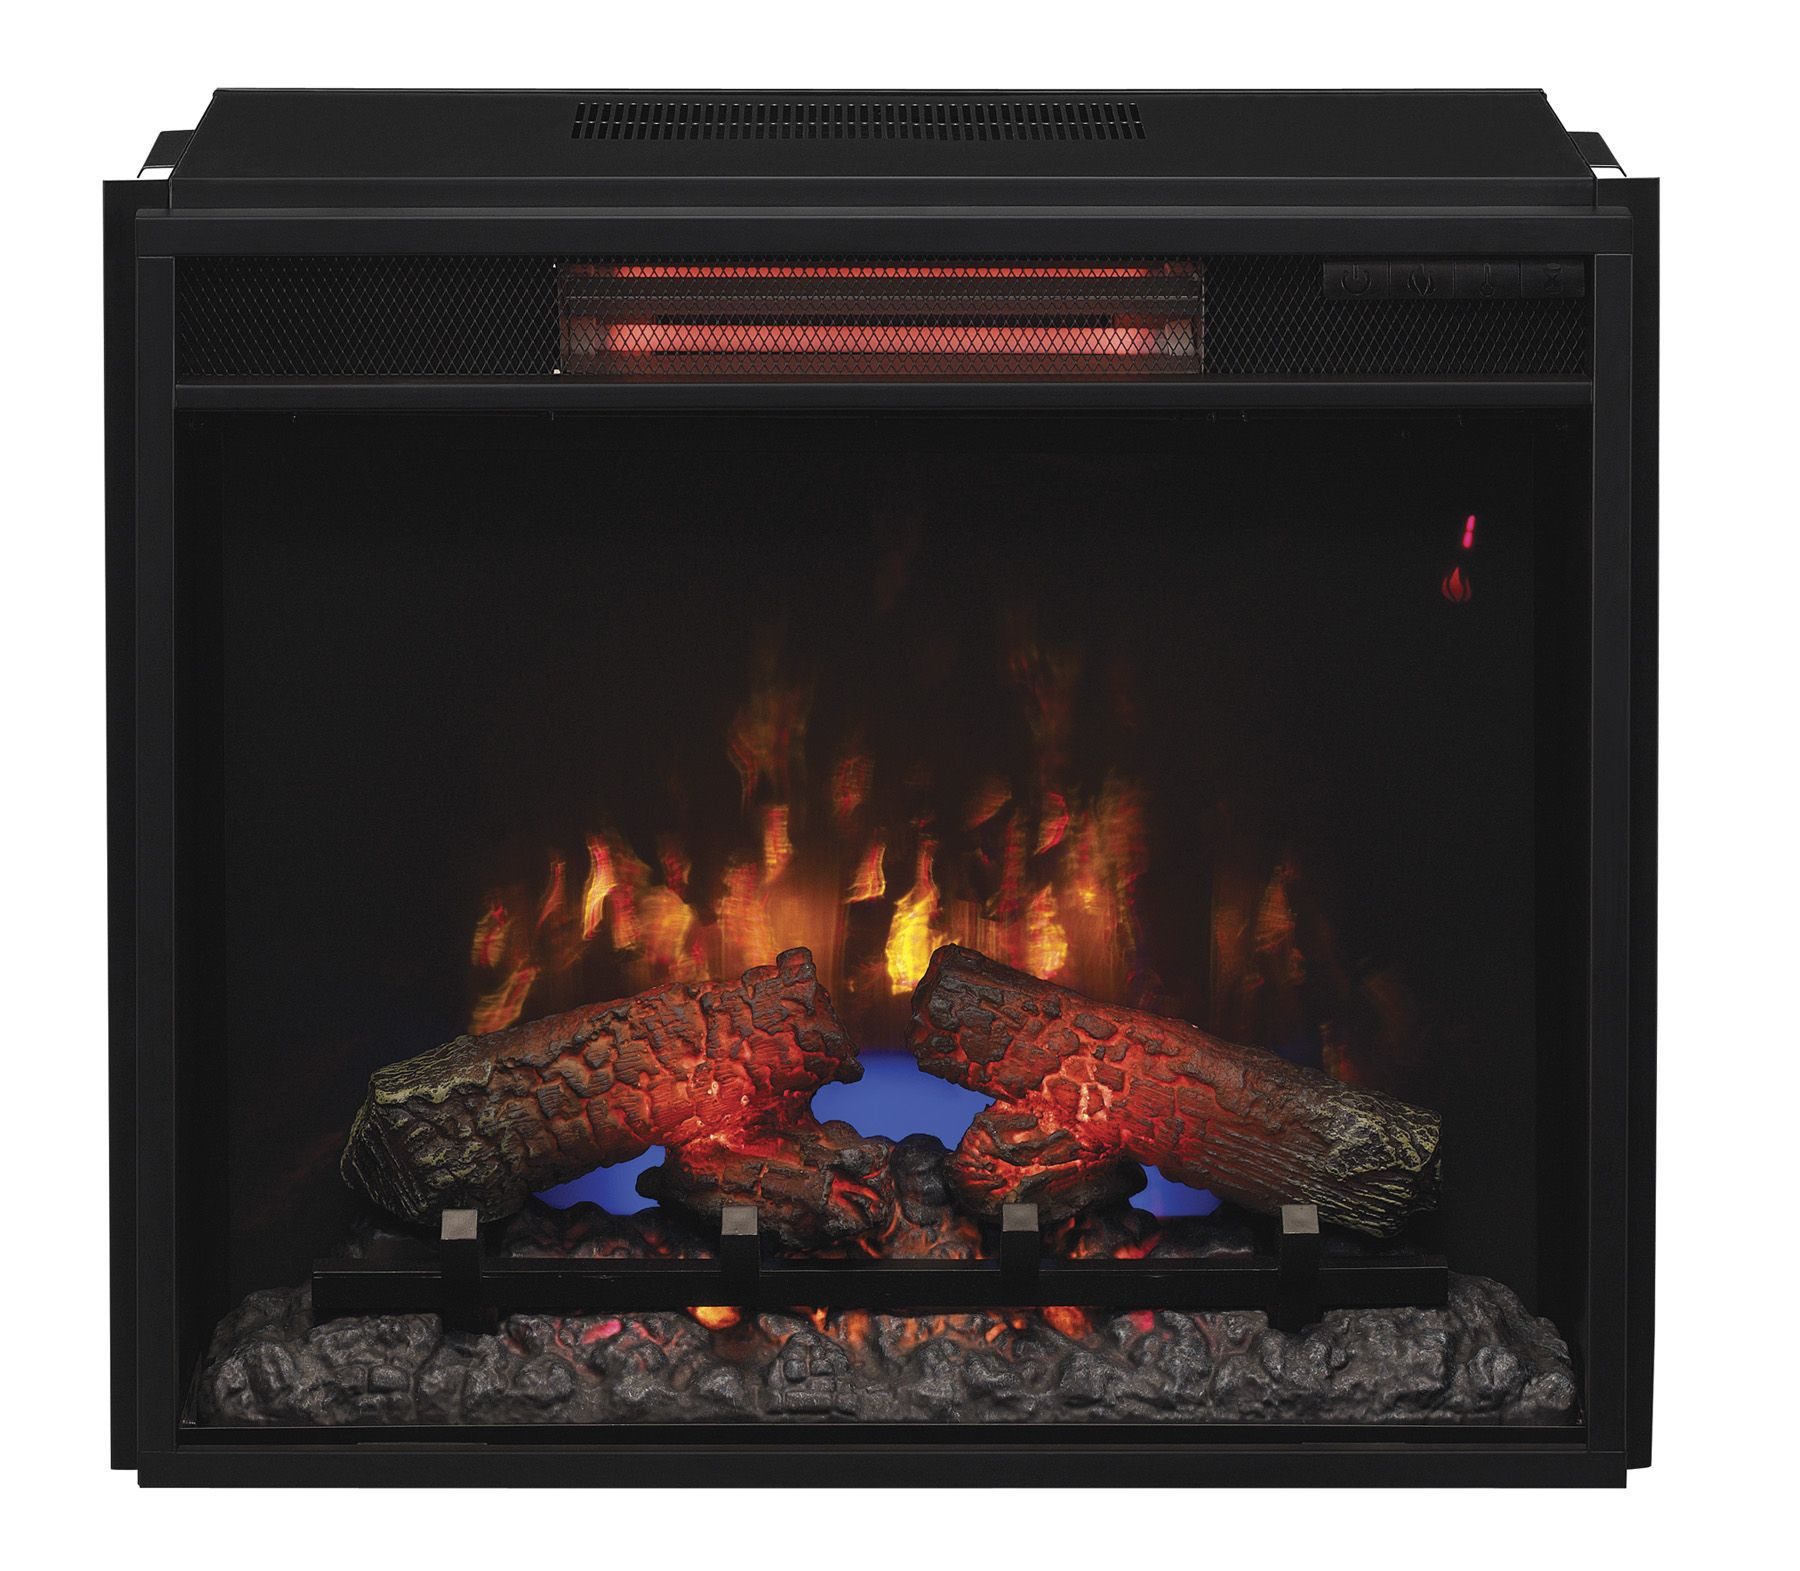 Classic Flame 23 23ii310gra Infrared Electric Fireplace Insert